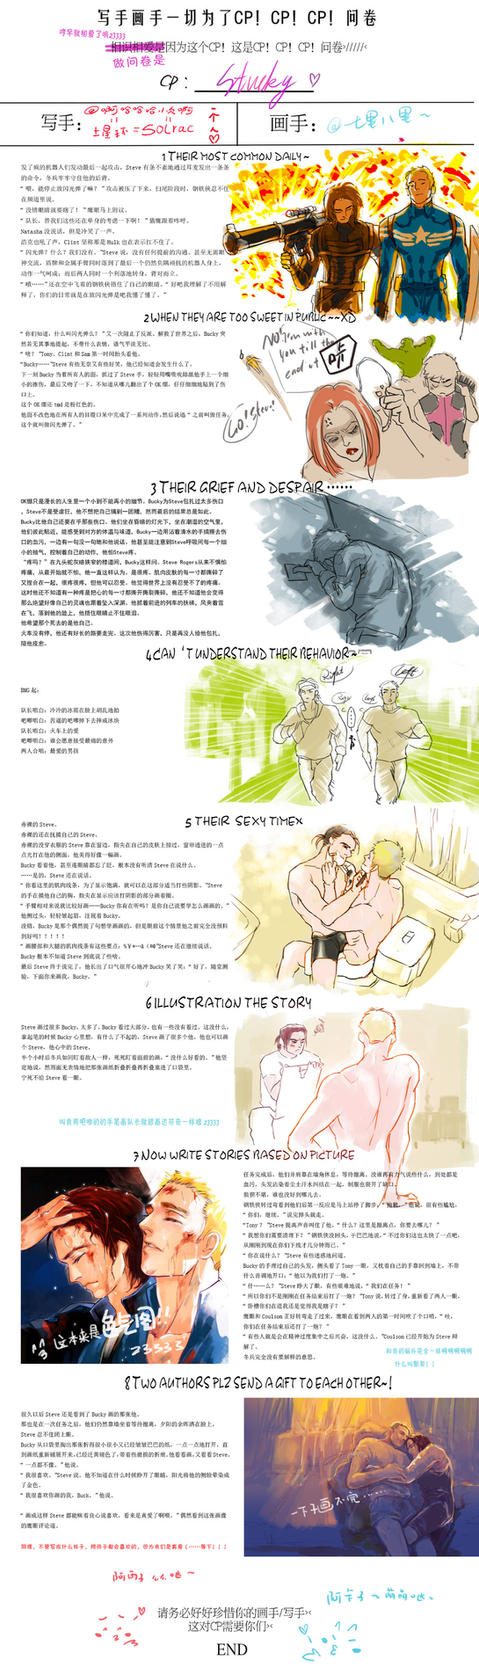 Stucky questionnaire by WuLiao-Yuzi